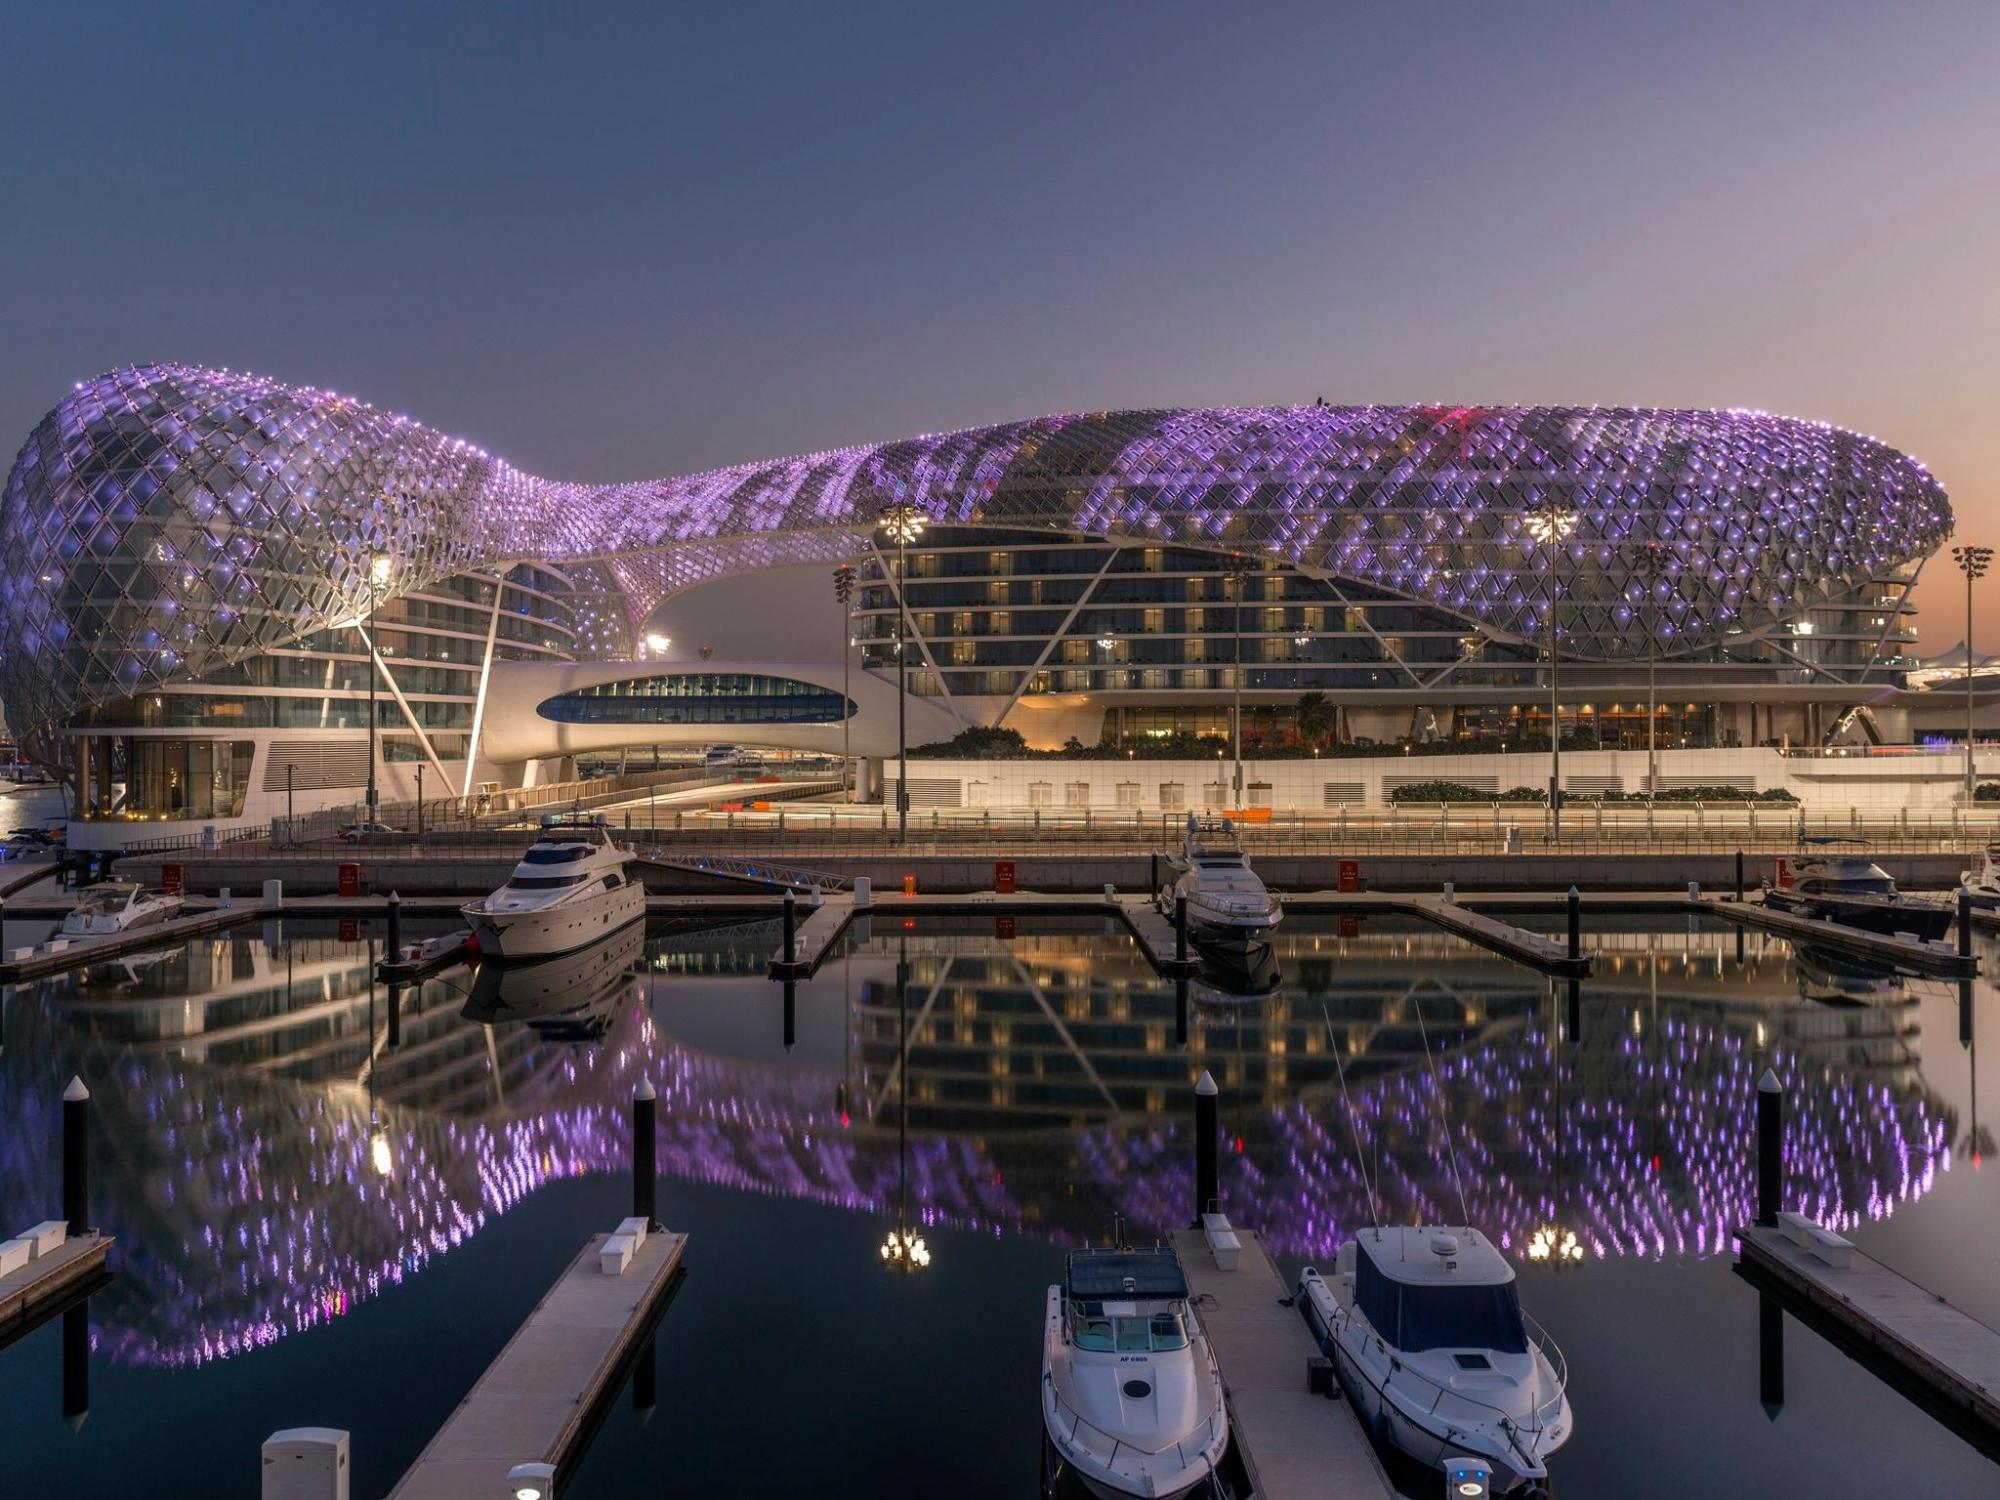 The Yas Viceroy Abu Dhabi's impressive marina situated in sensational Abu Dhabi.